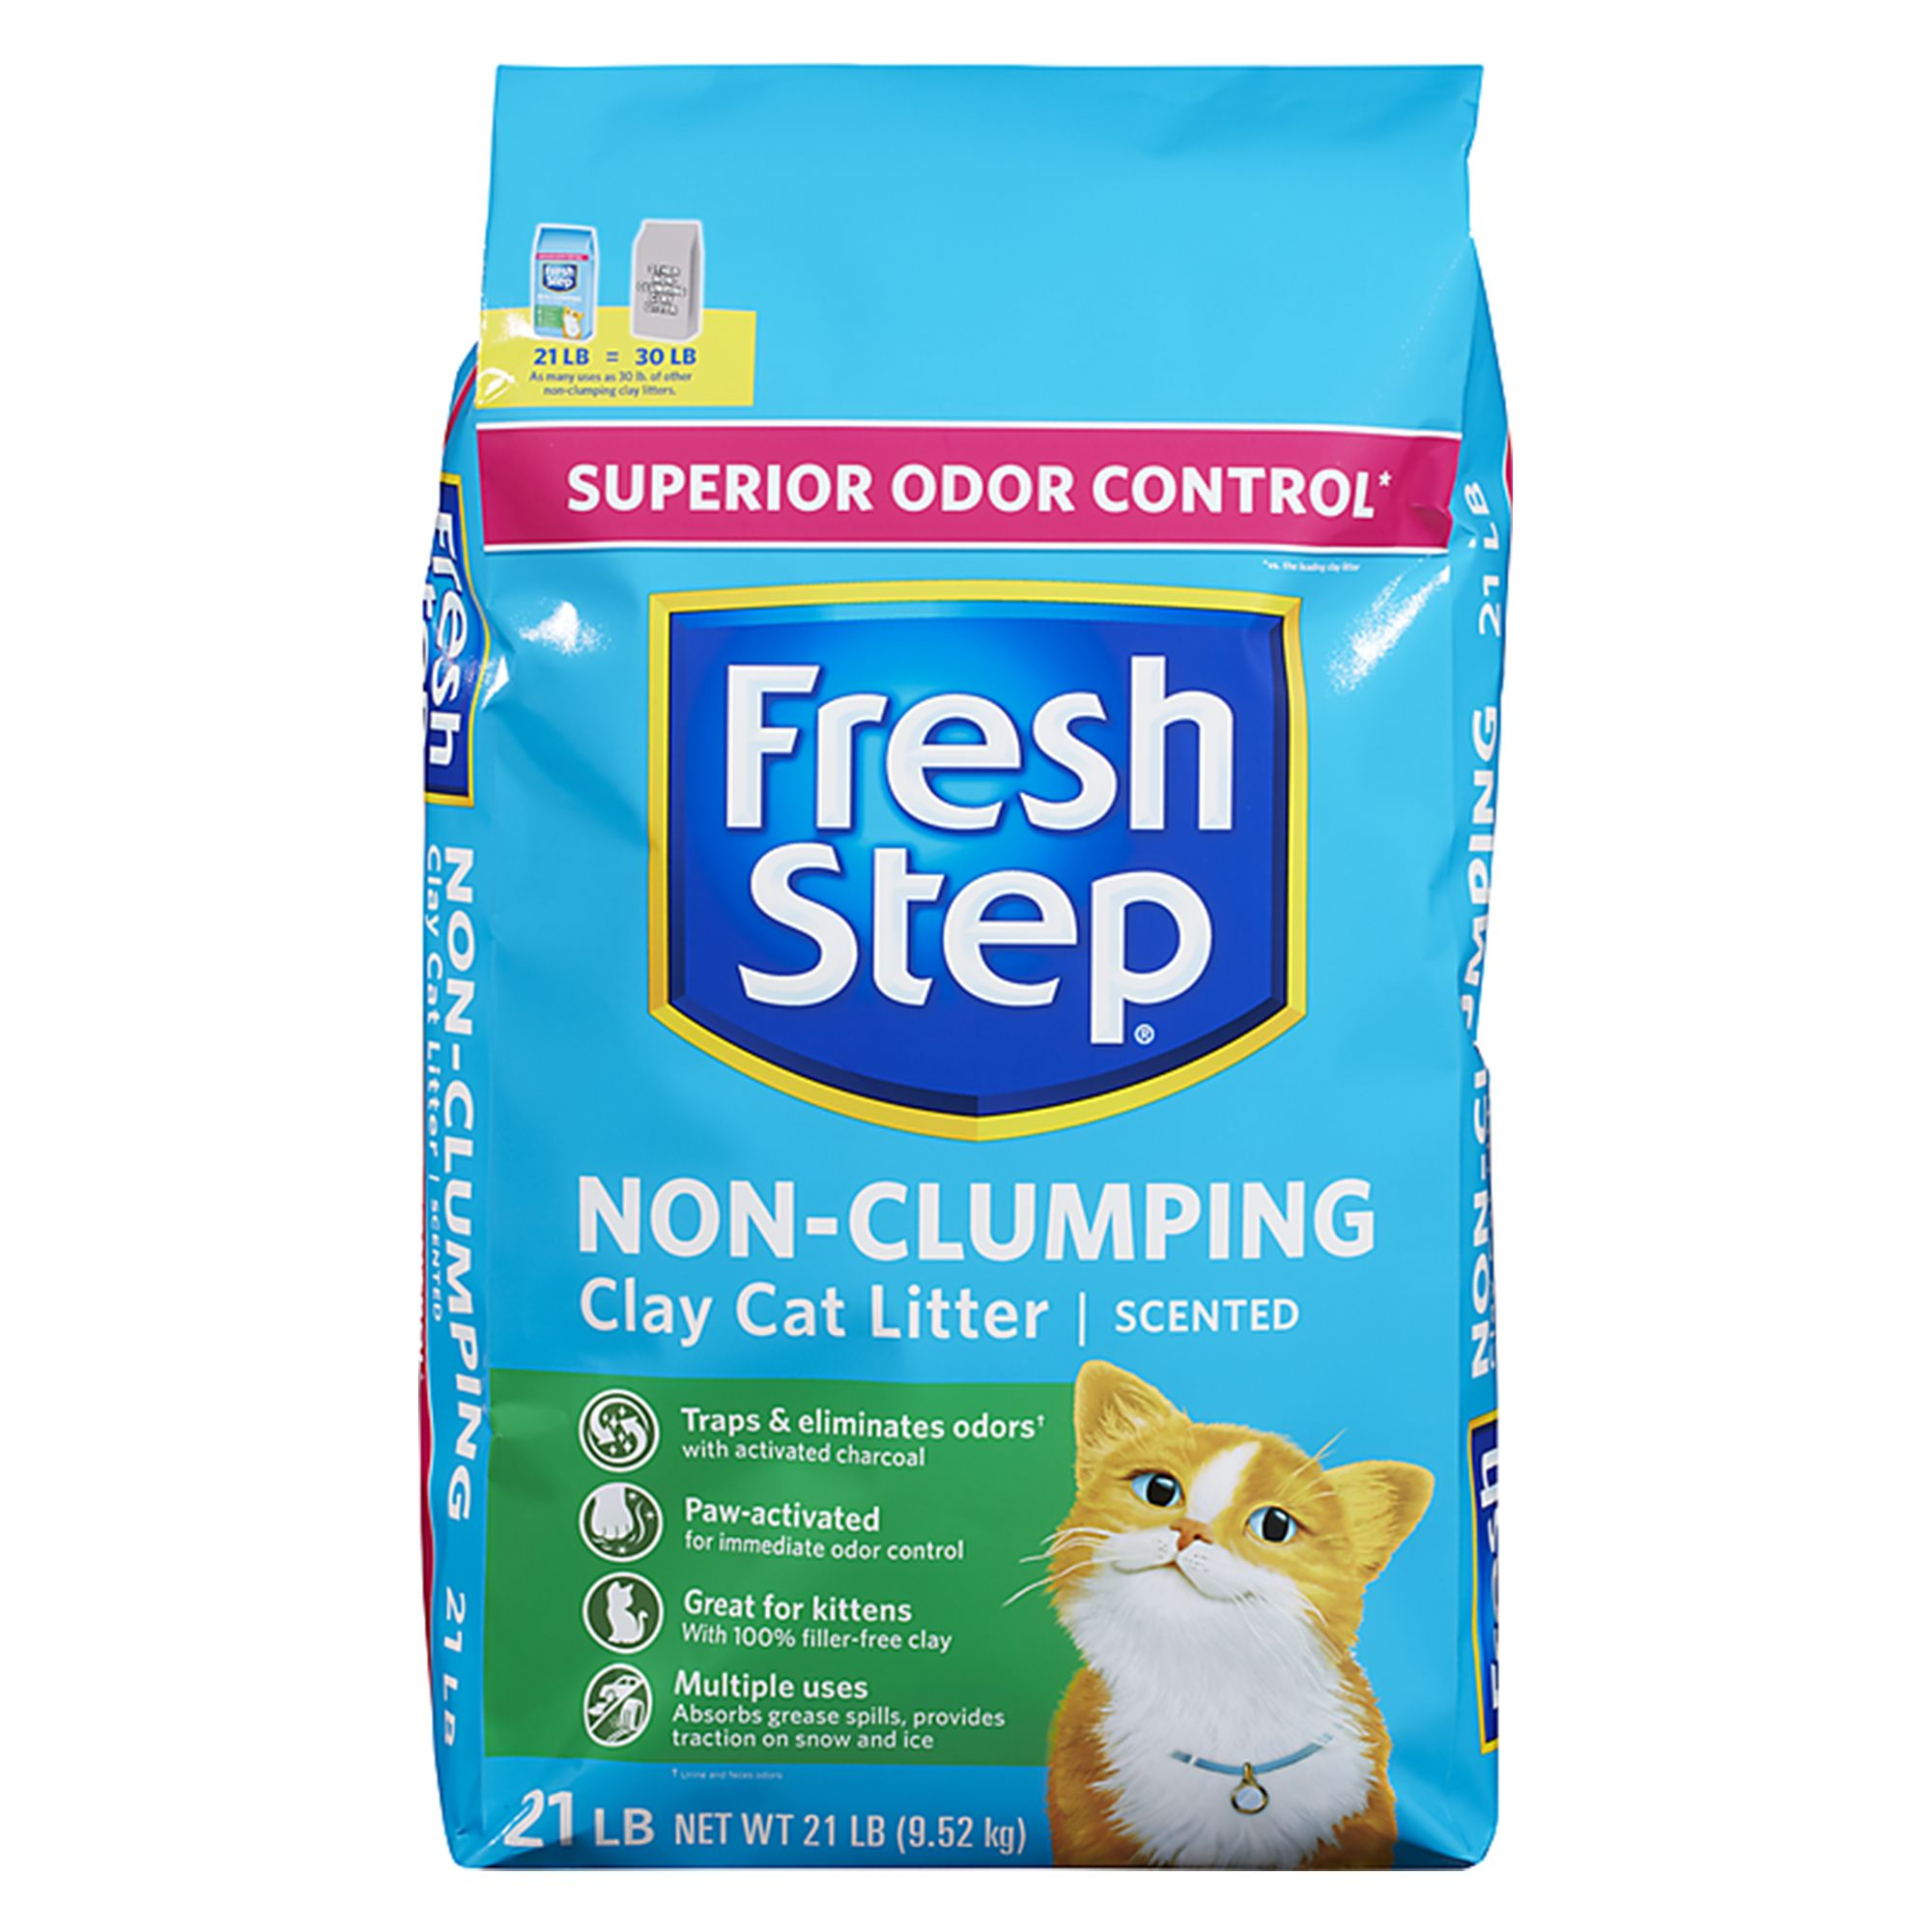 Fresh Step Clay Cat Litter size 21 Lb, gray/wash